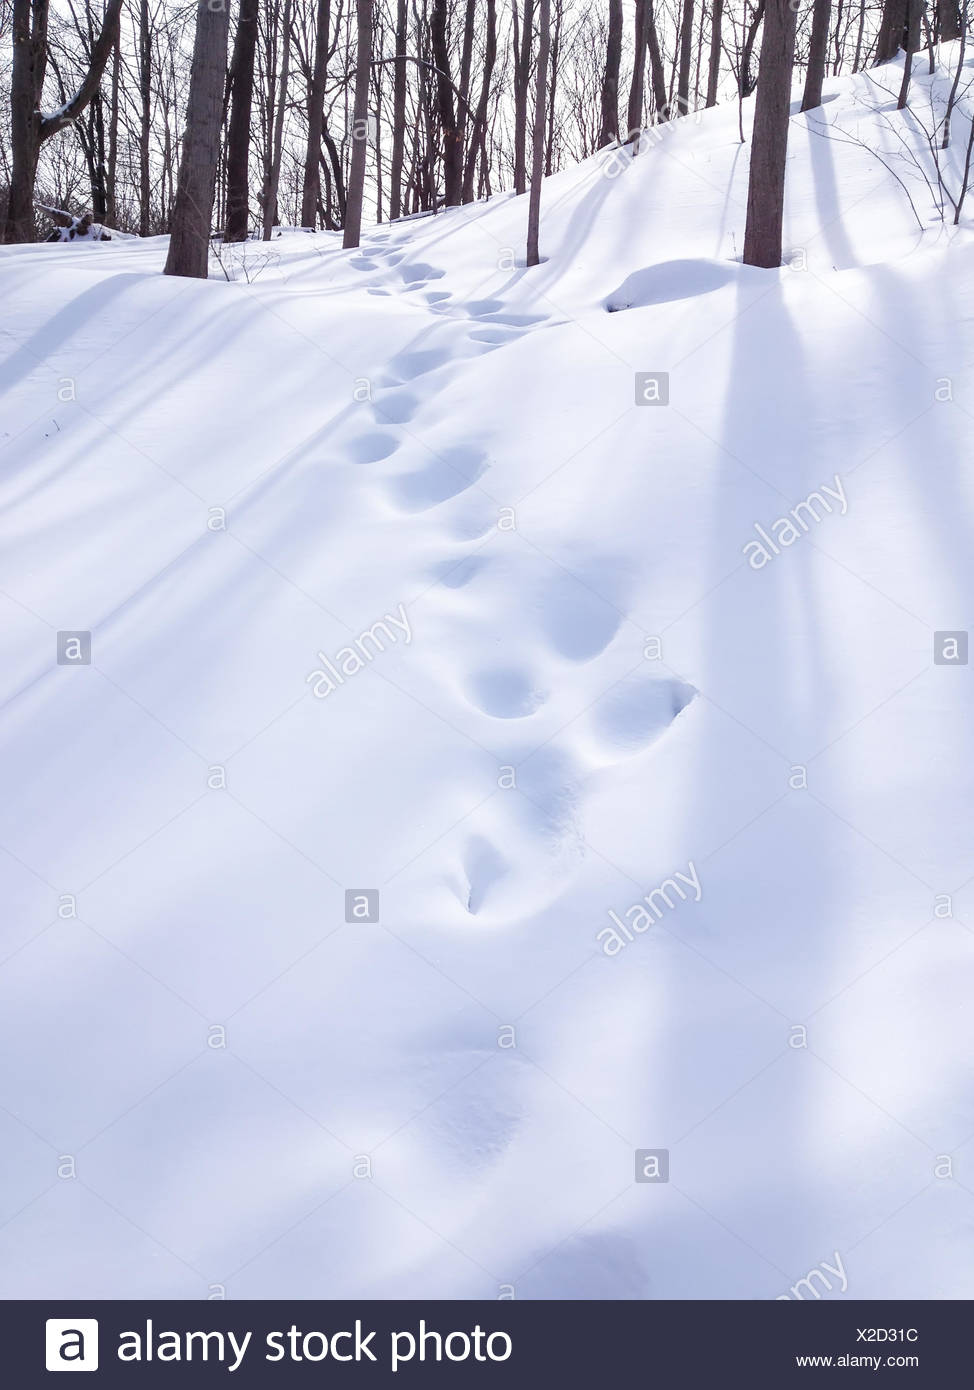 USA, Illinois, DuPage County, Darien, Winter woods in afternoon - Stock Image